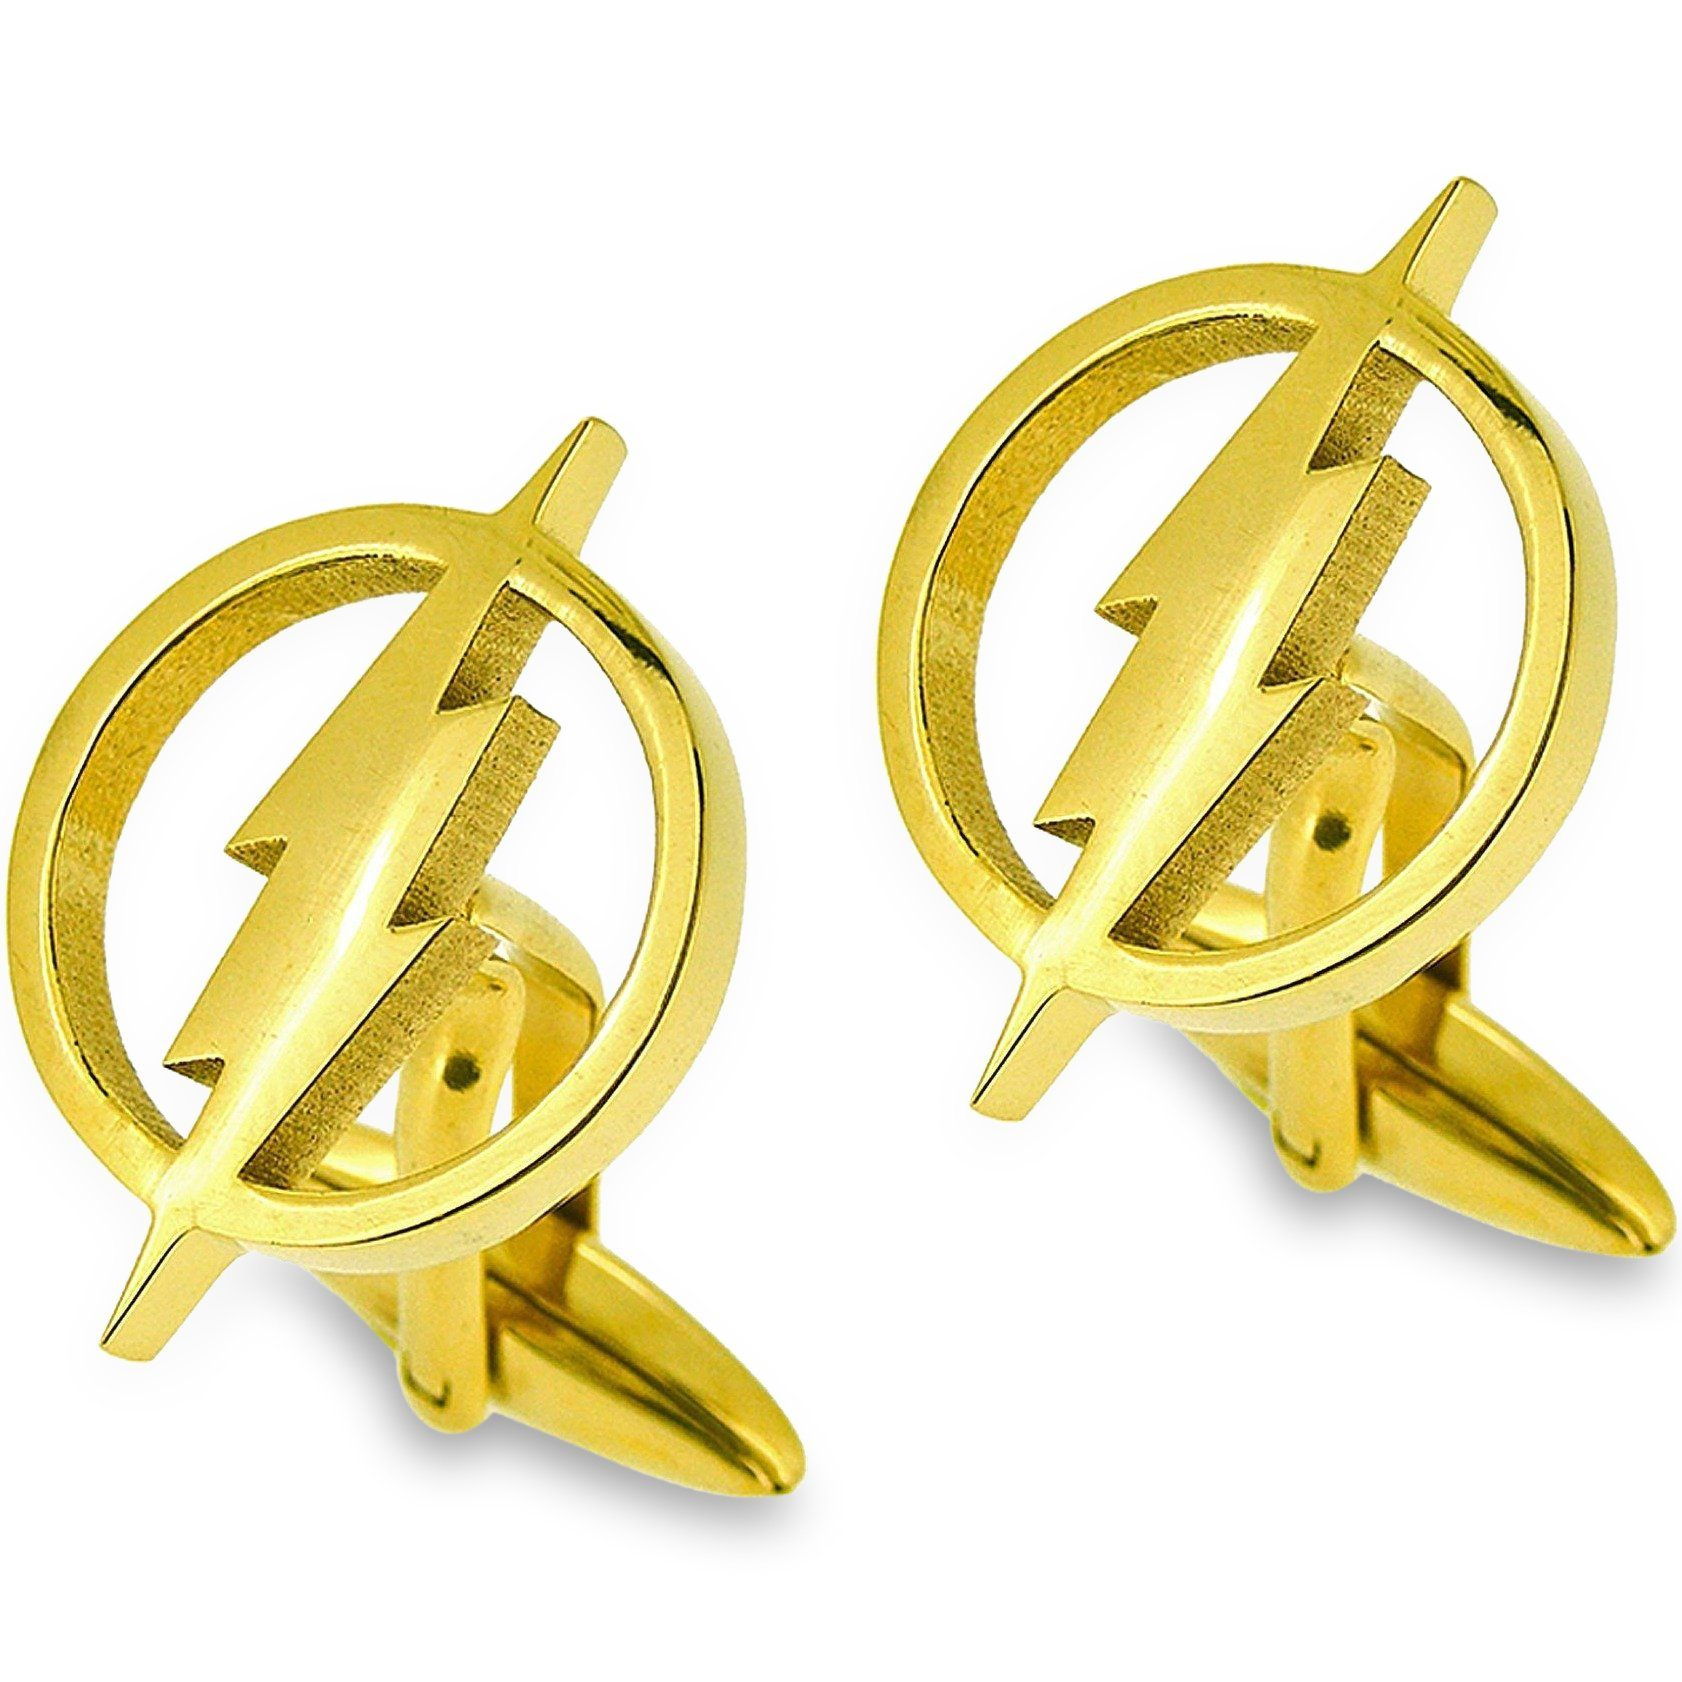 The Flash Cufflinks Gold